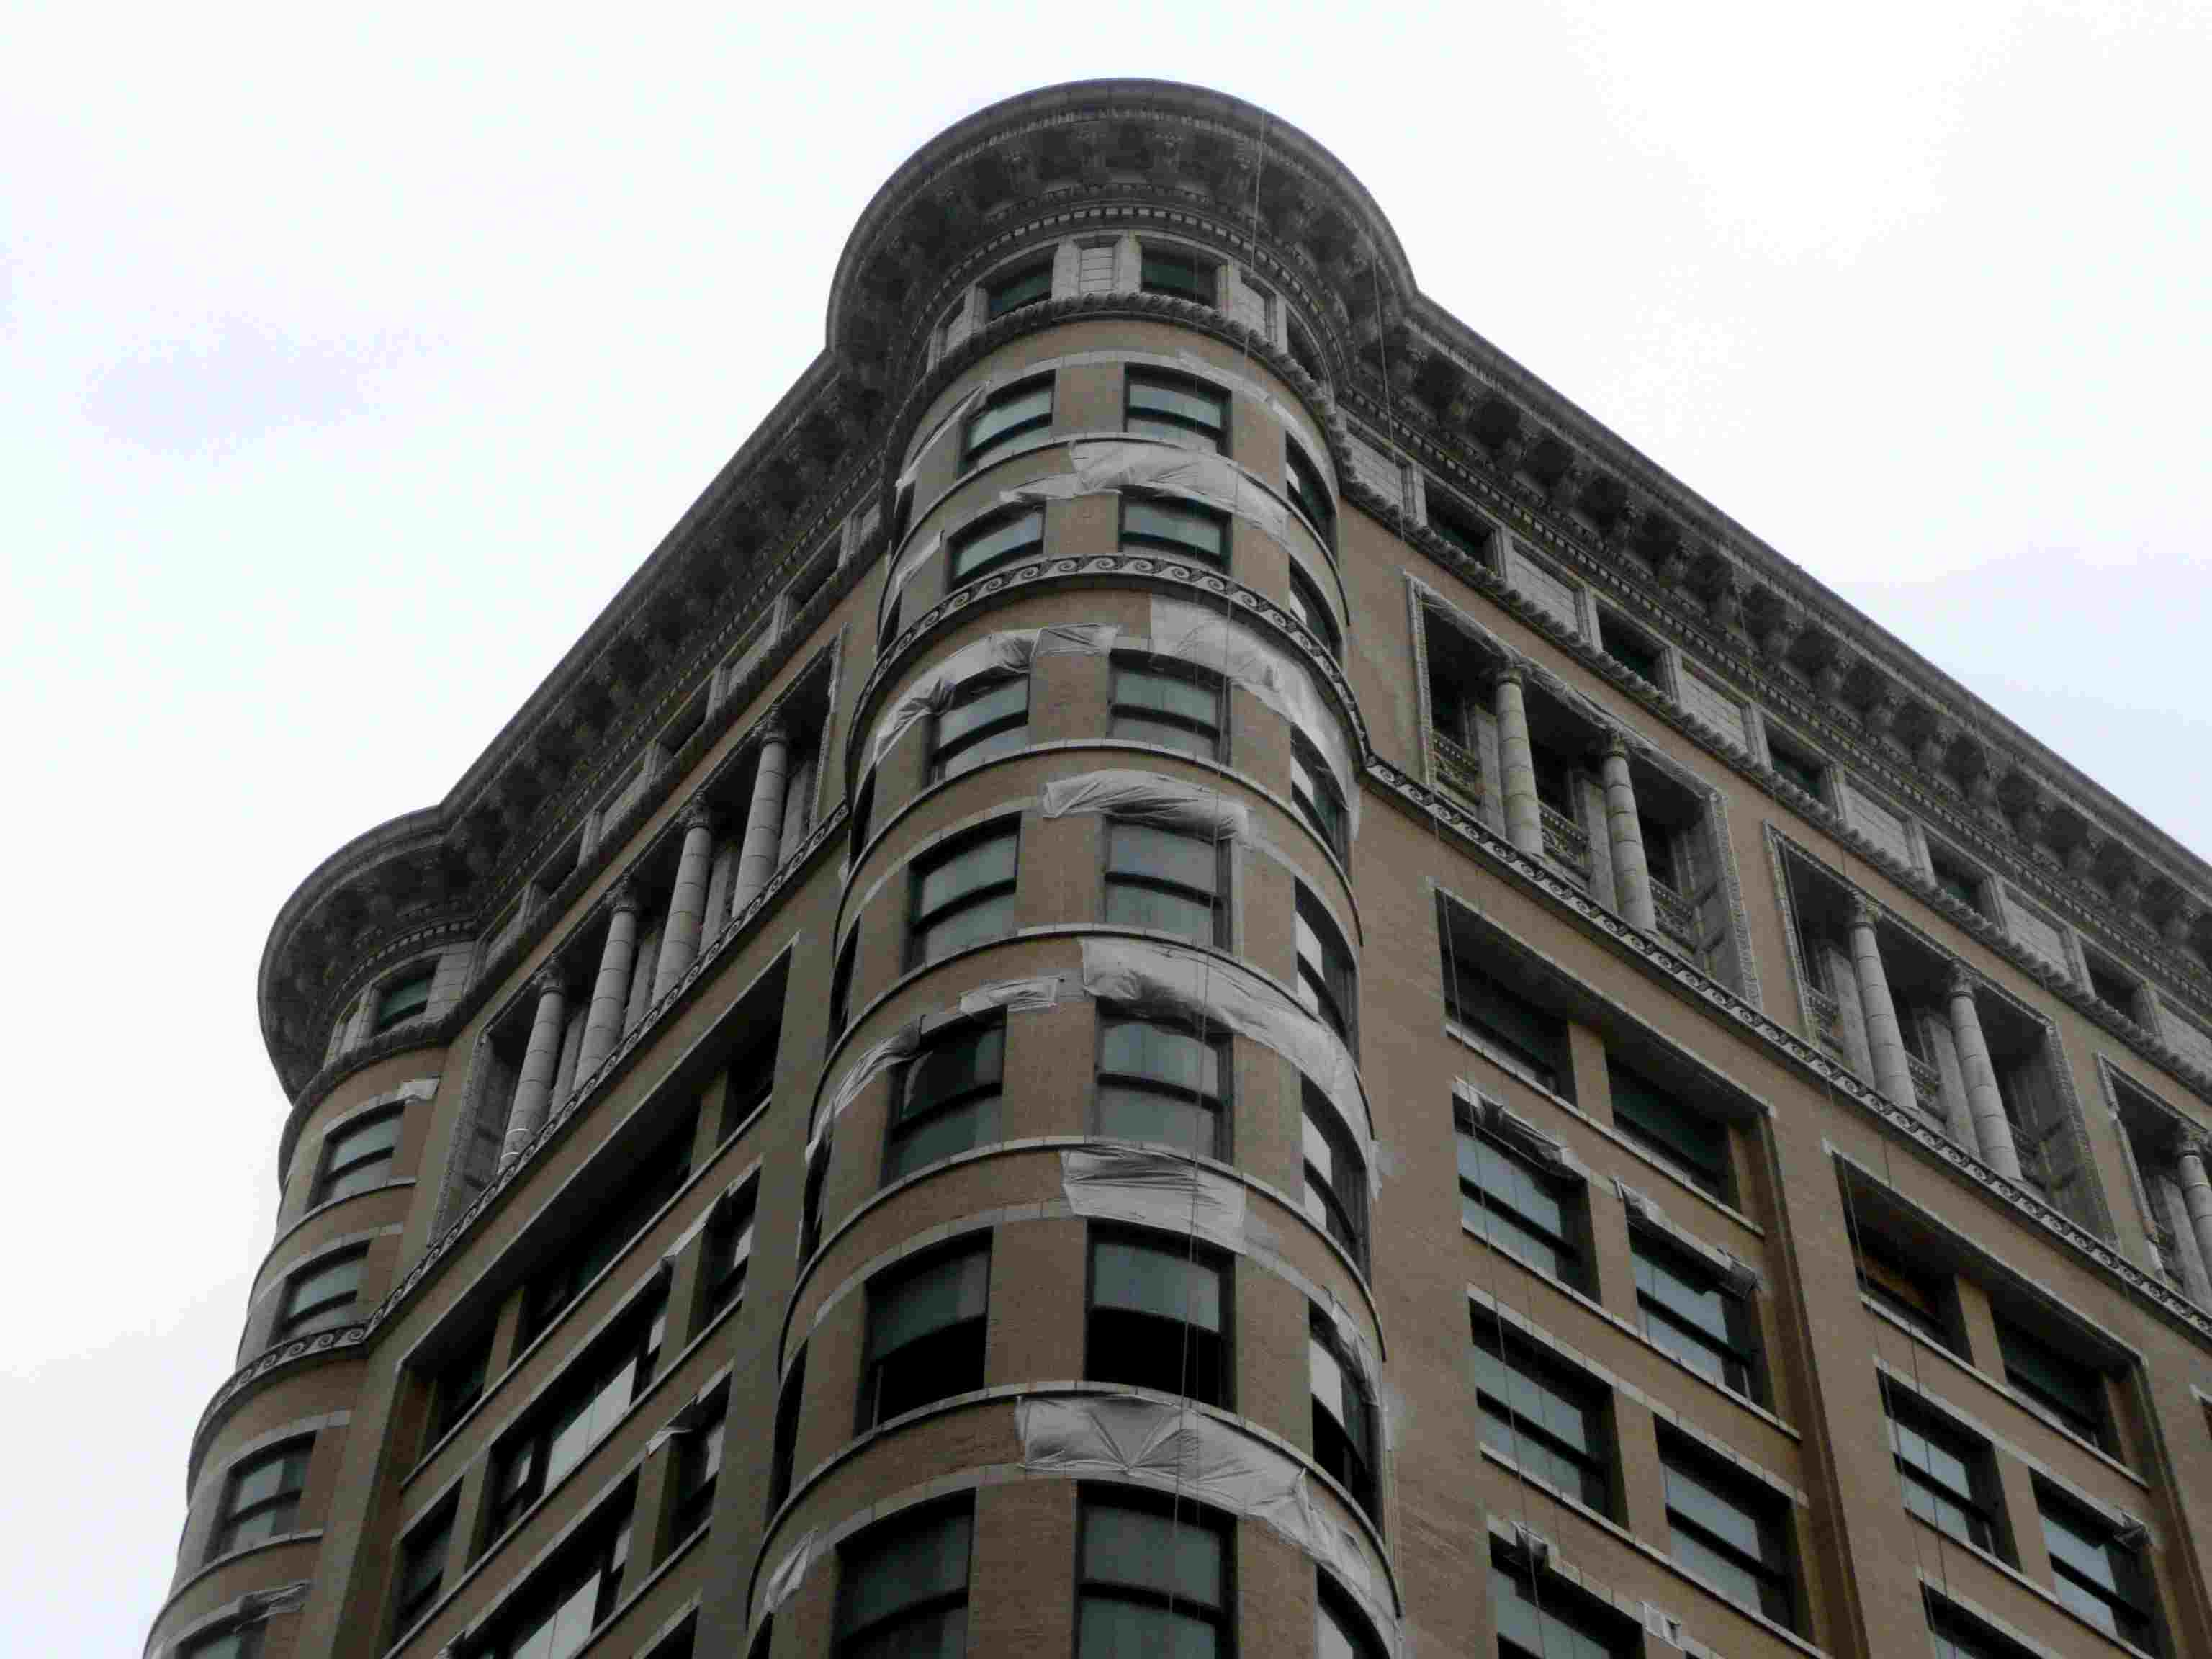 Detail of Corner Windows, Old Colony building Designed by Holabird and Roche, Chicago